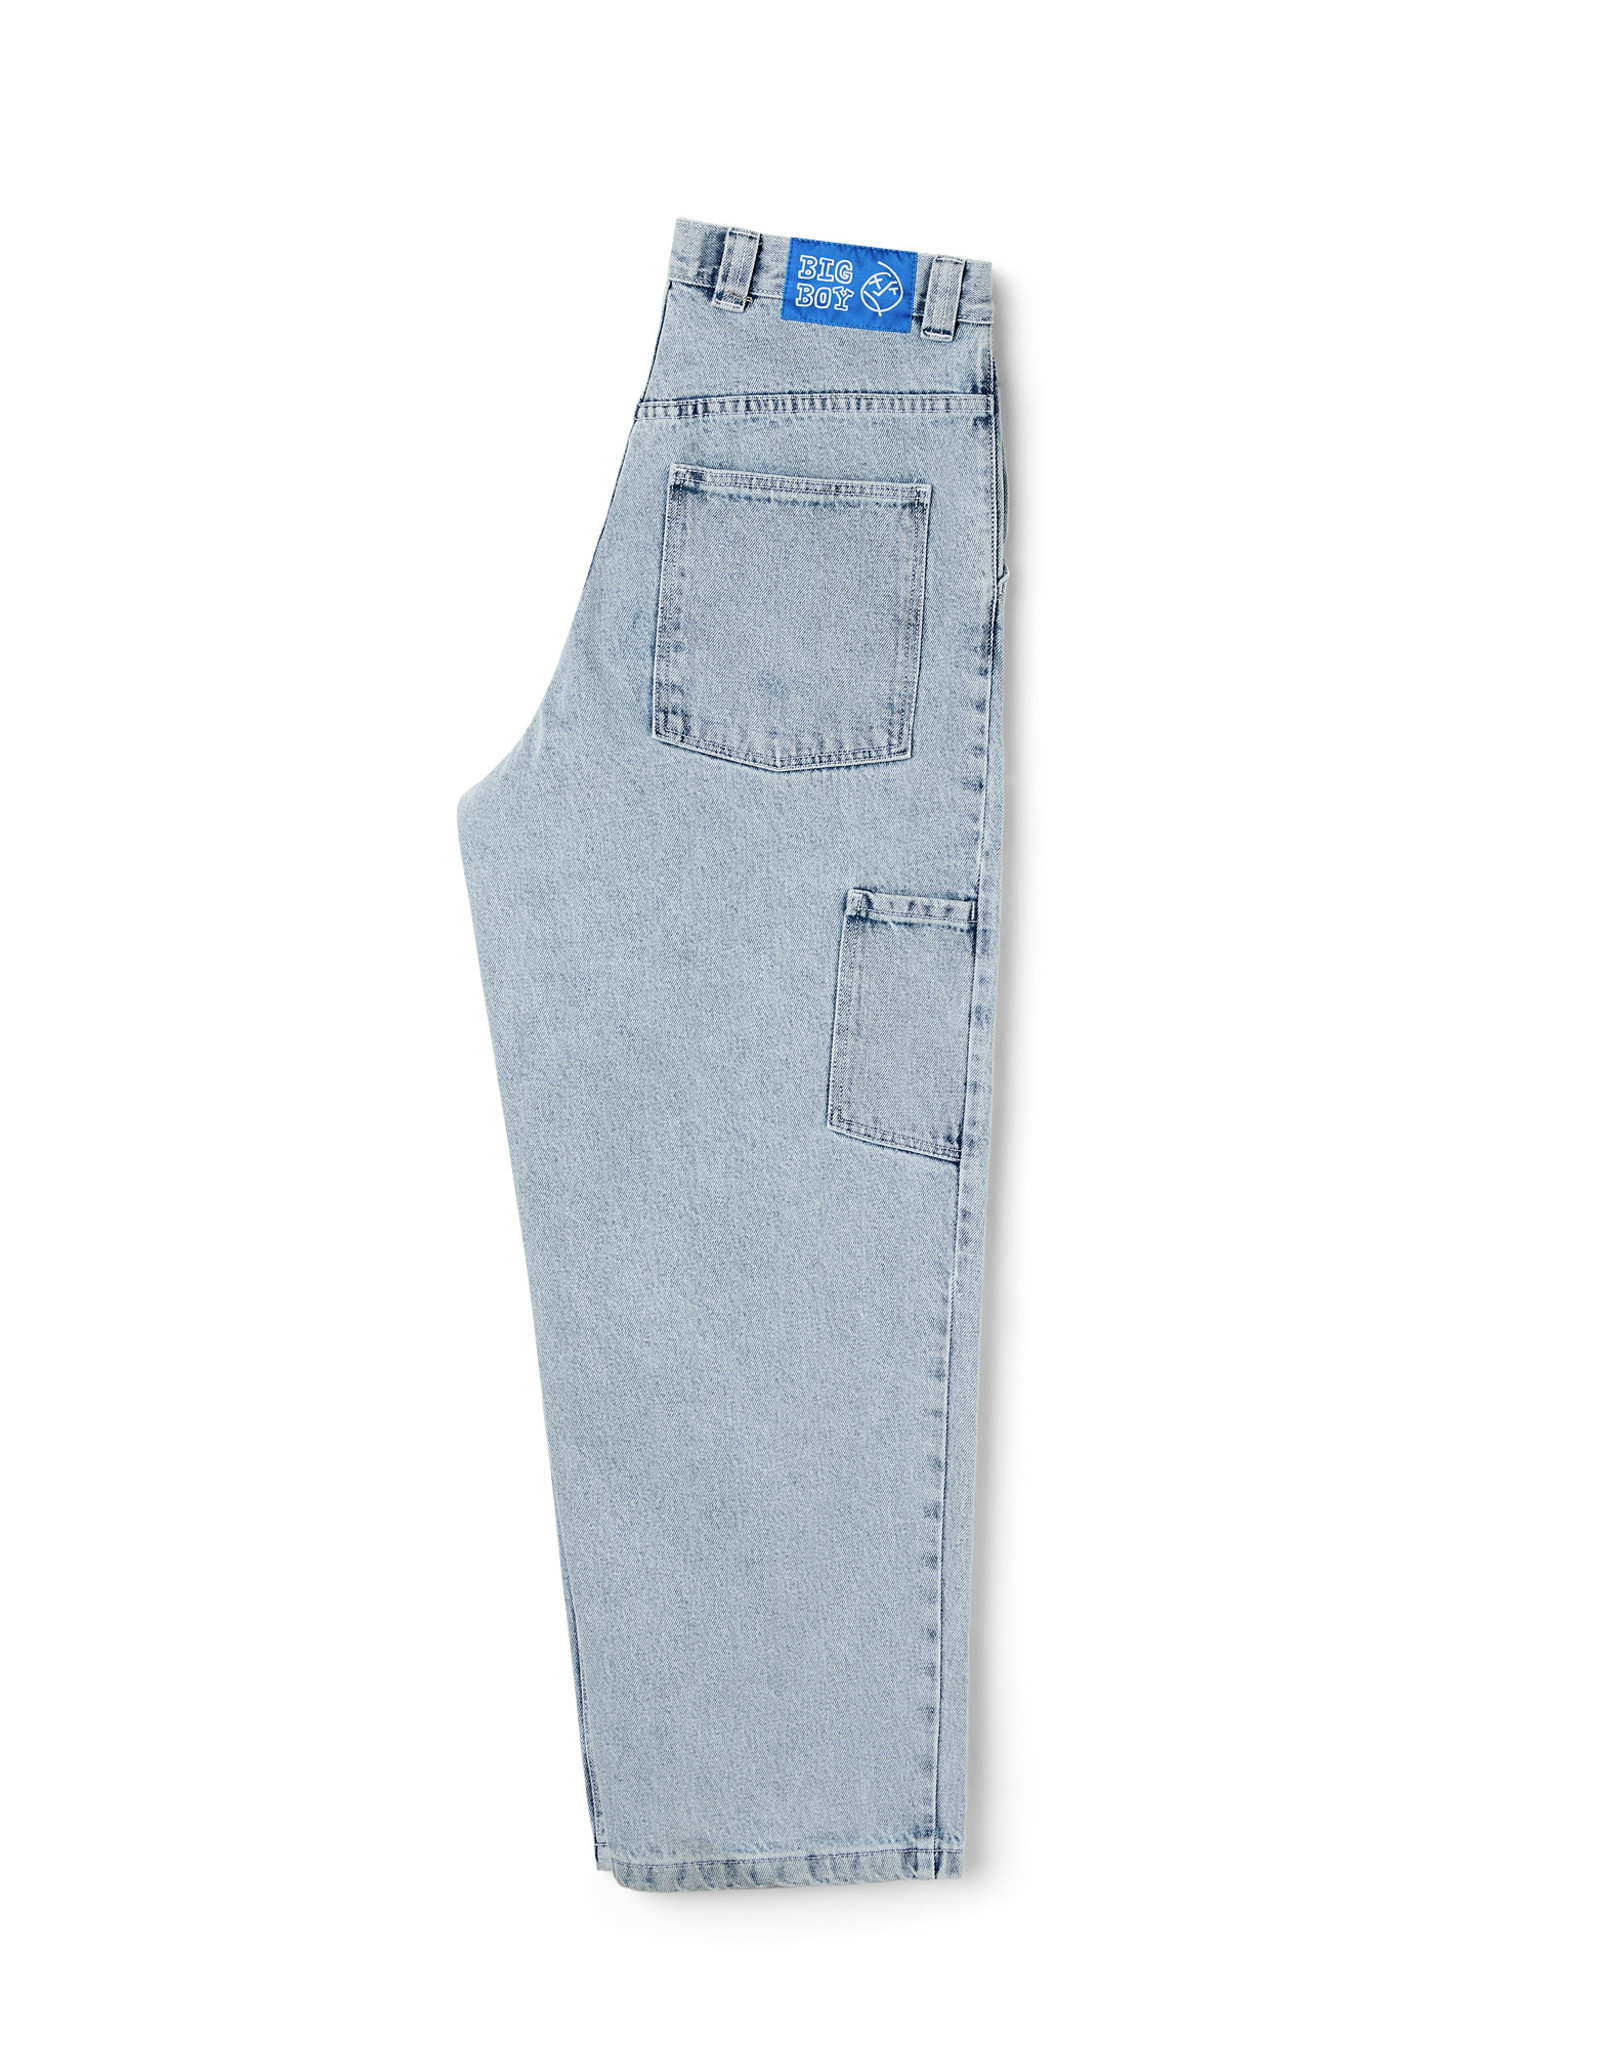 POLAR BIG BOY WORK PANTS - LIGHT BLUE